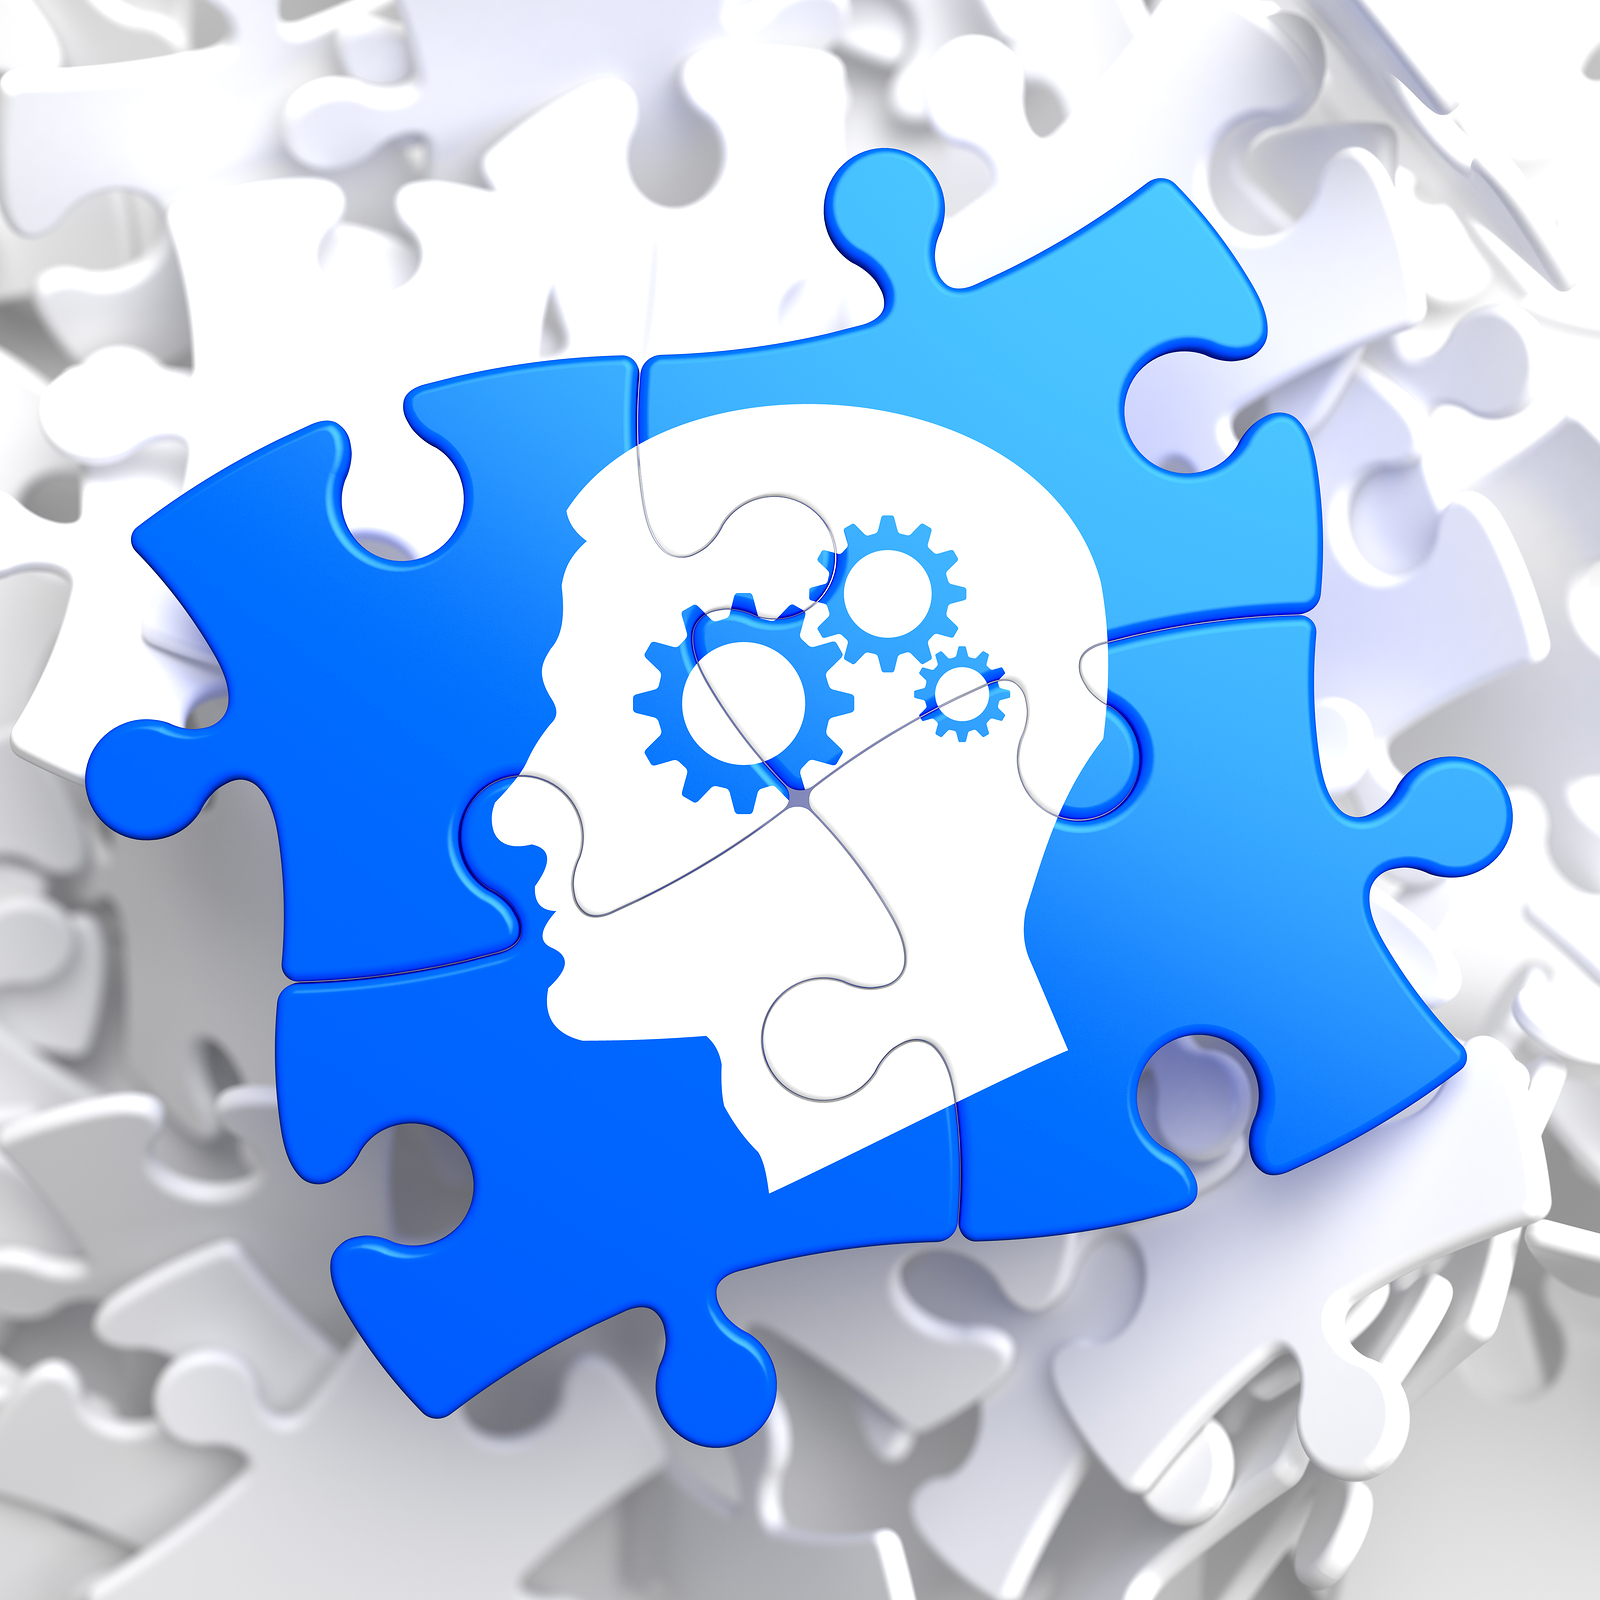 Psychological Concept - Profile of Head with Cogwheel Gear Mechanism Located on Blue Puzzle.